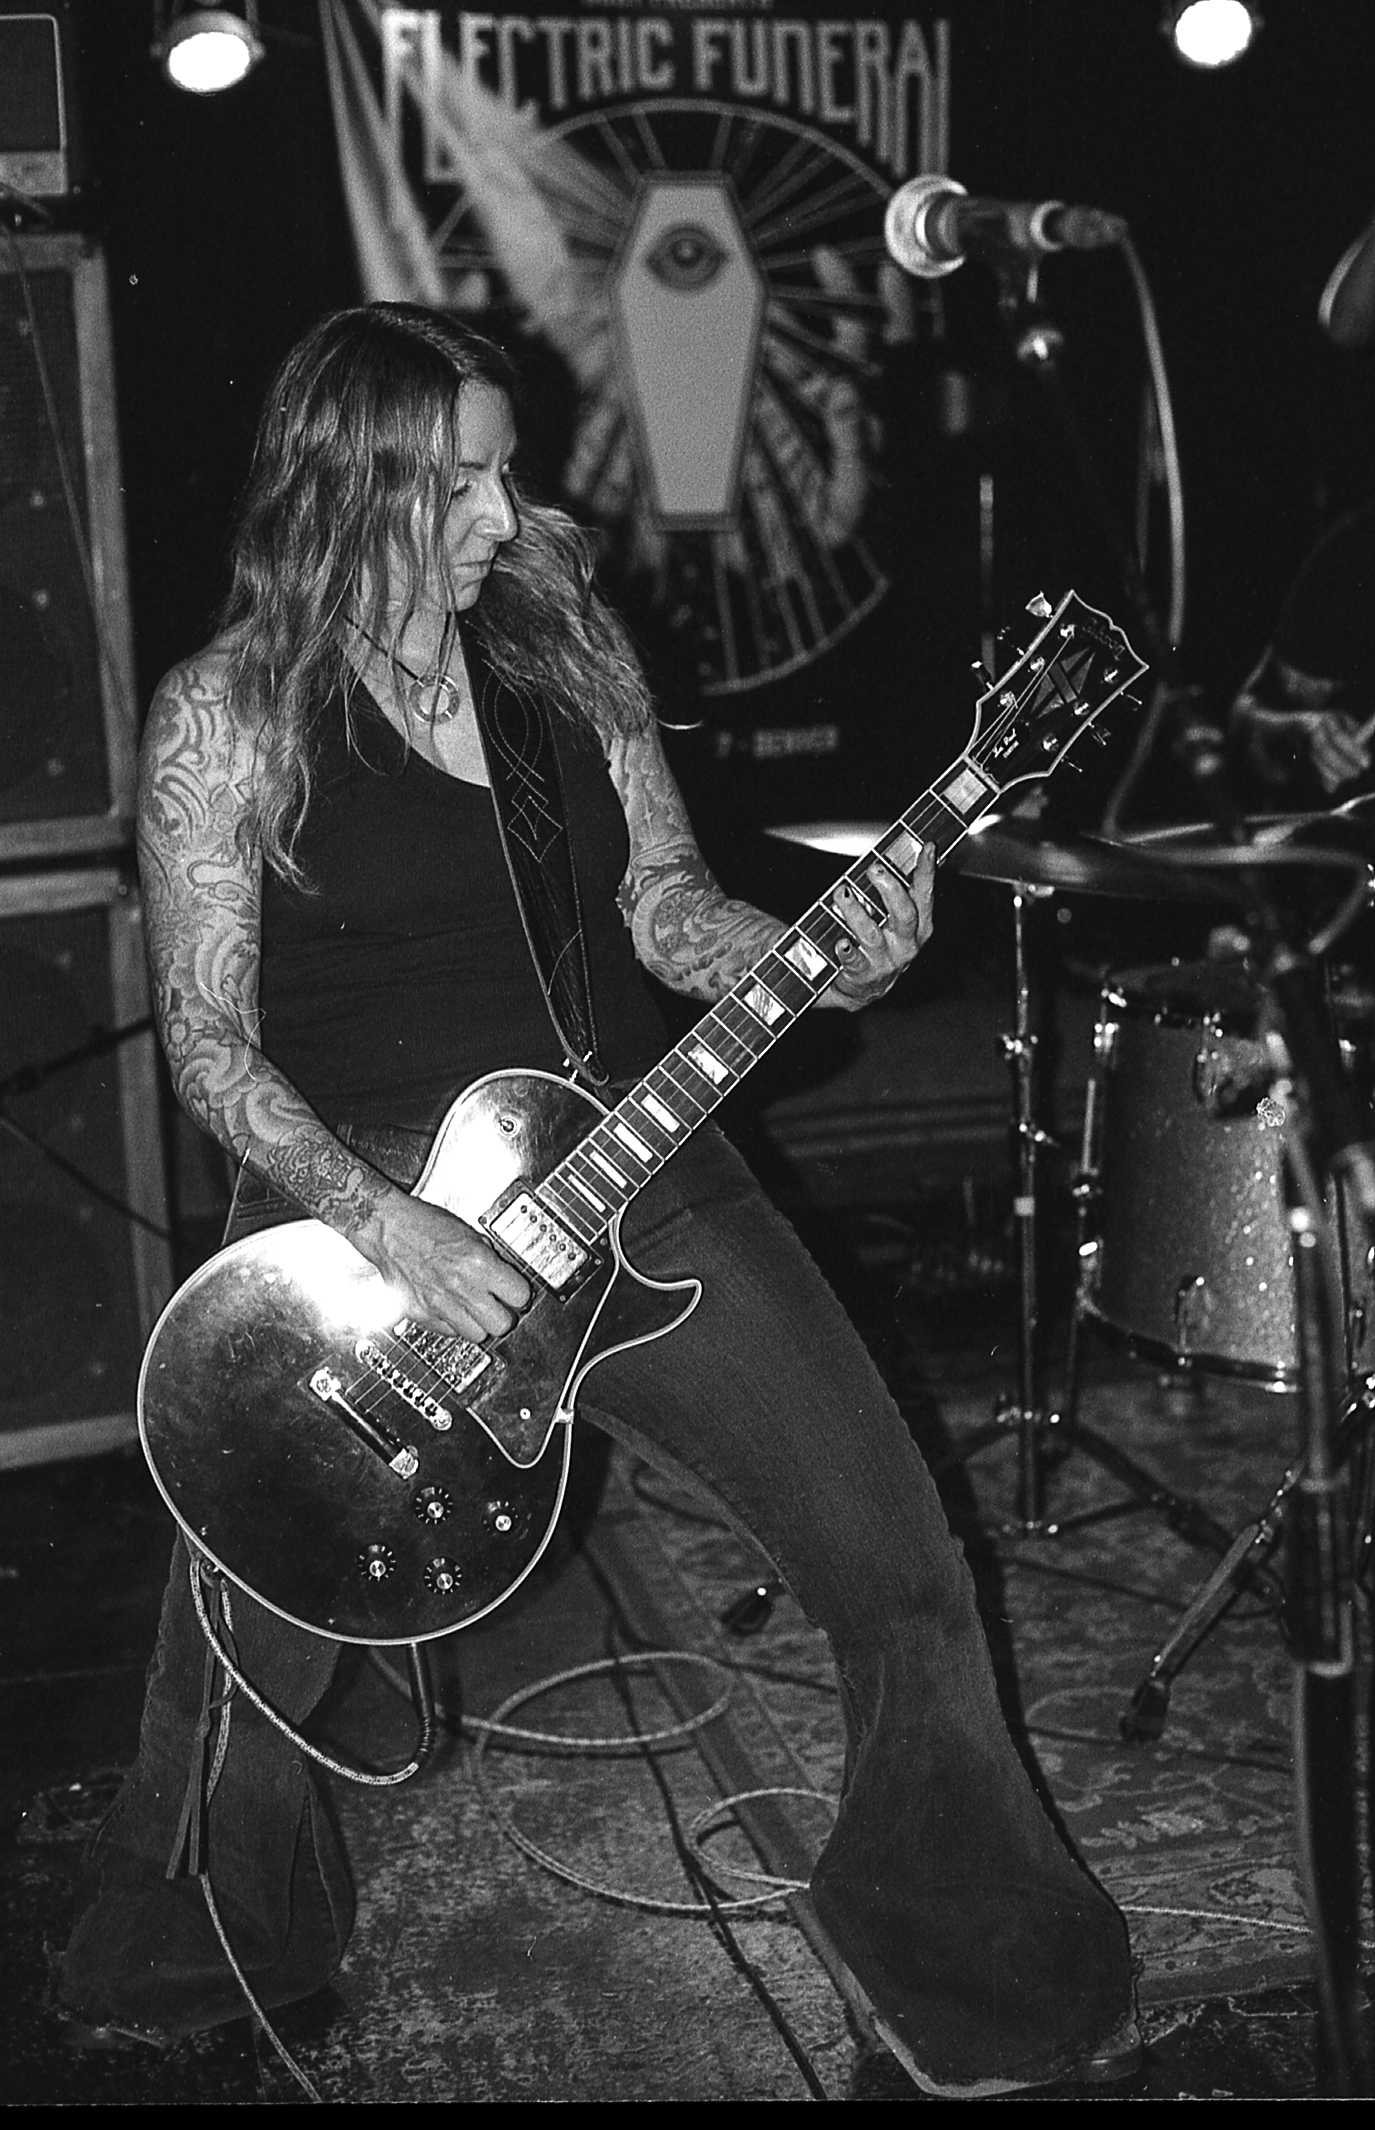 Lori. Acid King, 2017. One of the most humble and excellent people doing it. A lifer and matriarch of the heavy scene. Acid King always delivers, and their festival closing set last year was no exception.